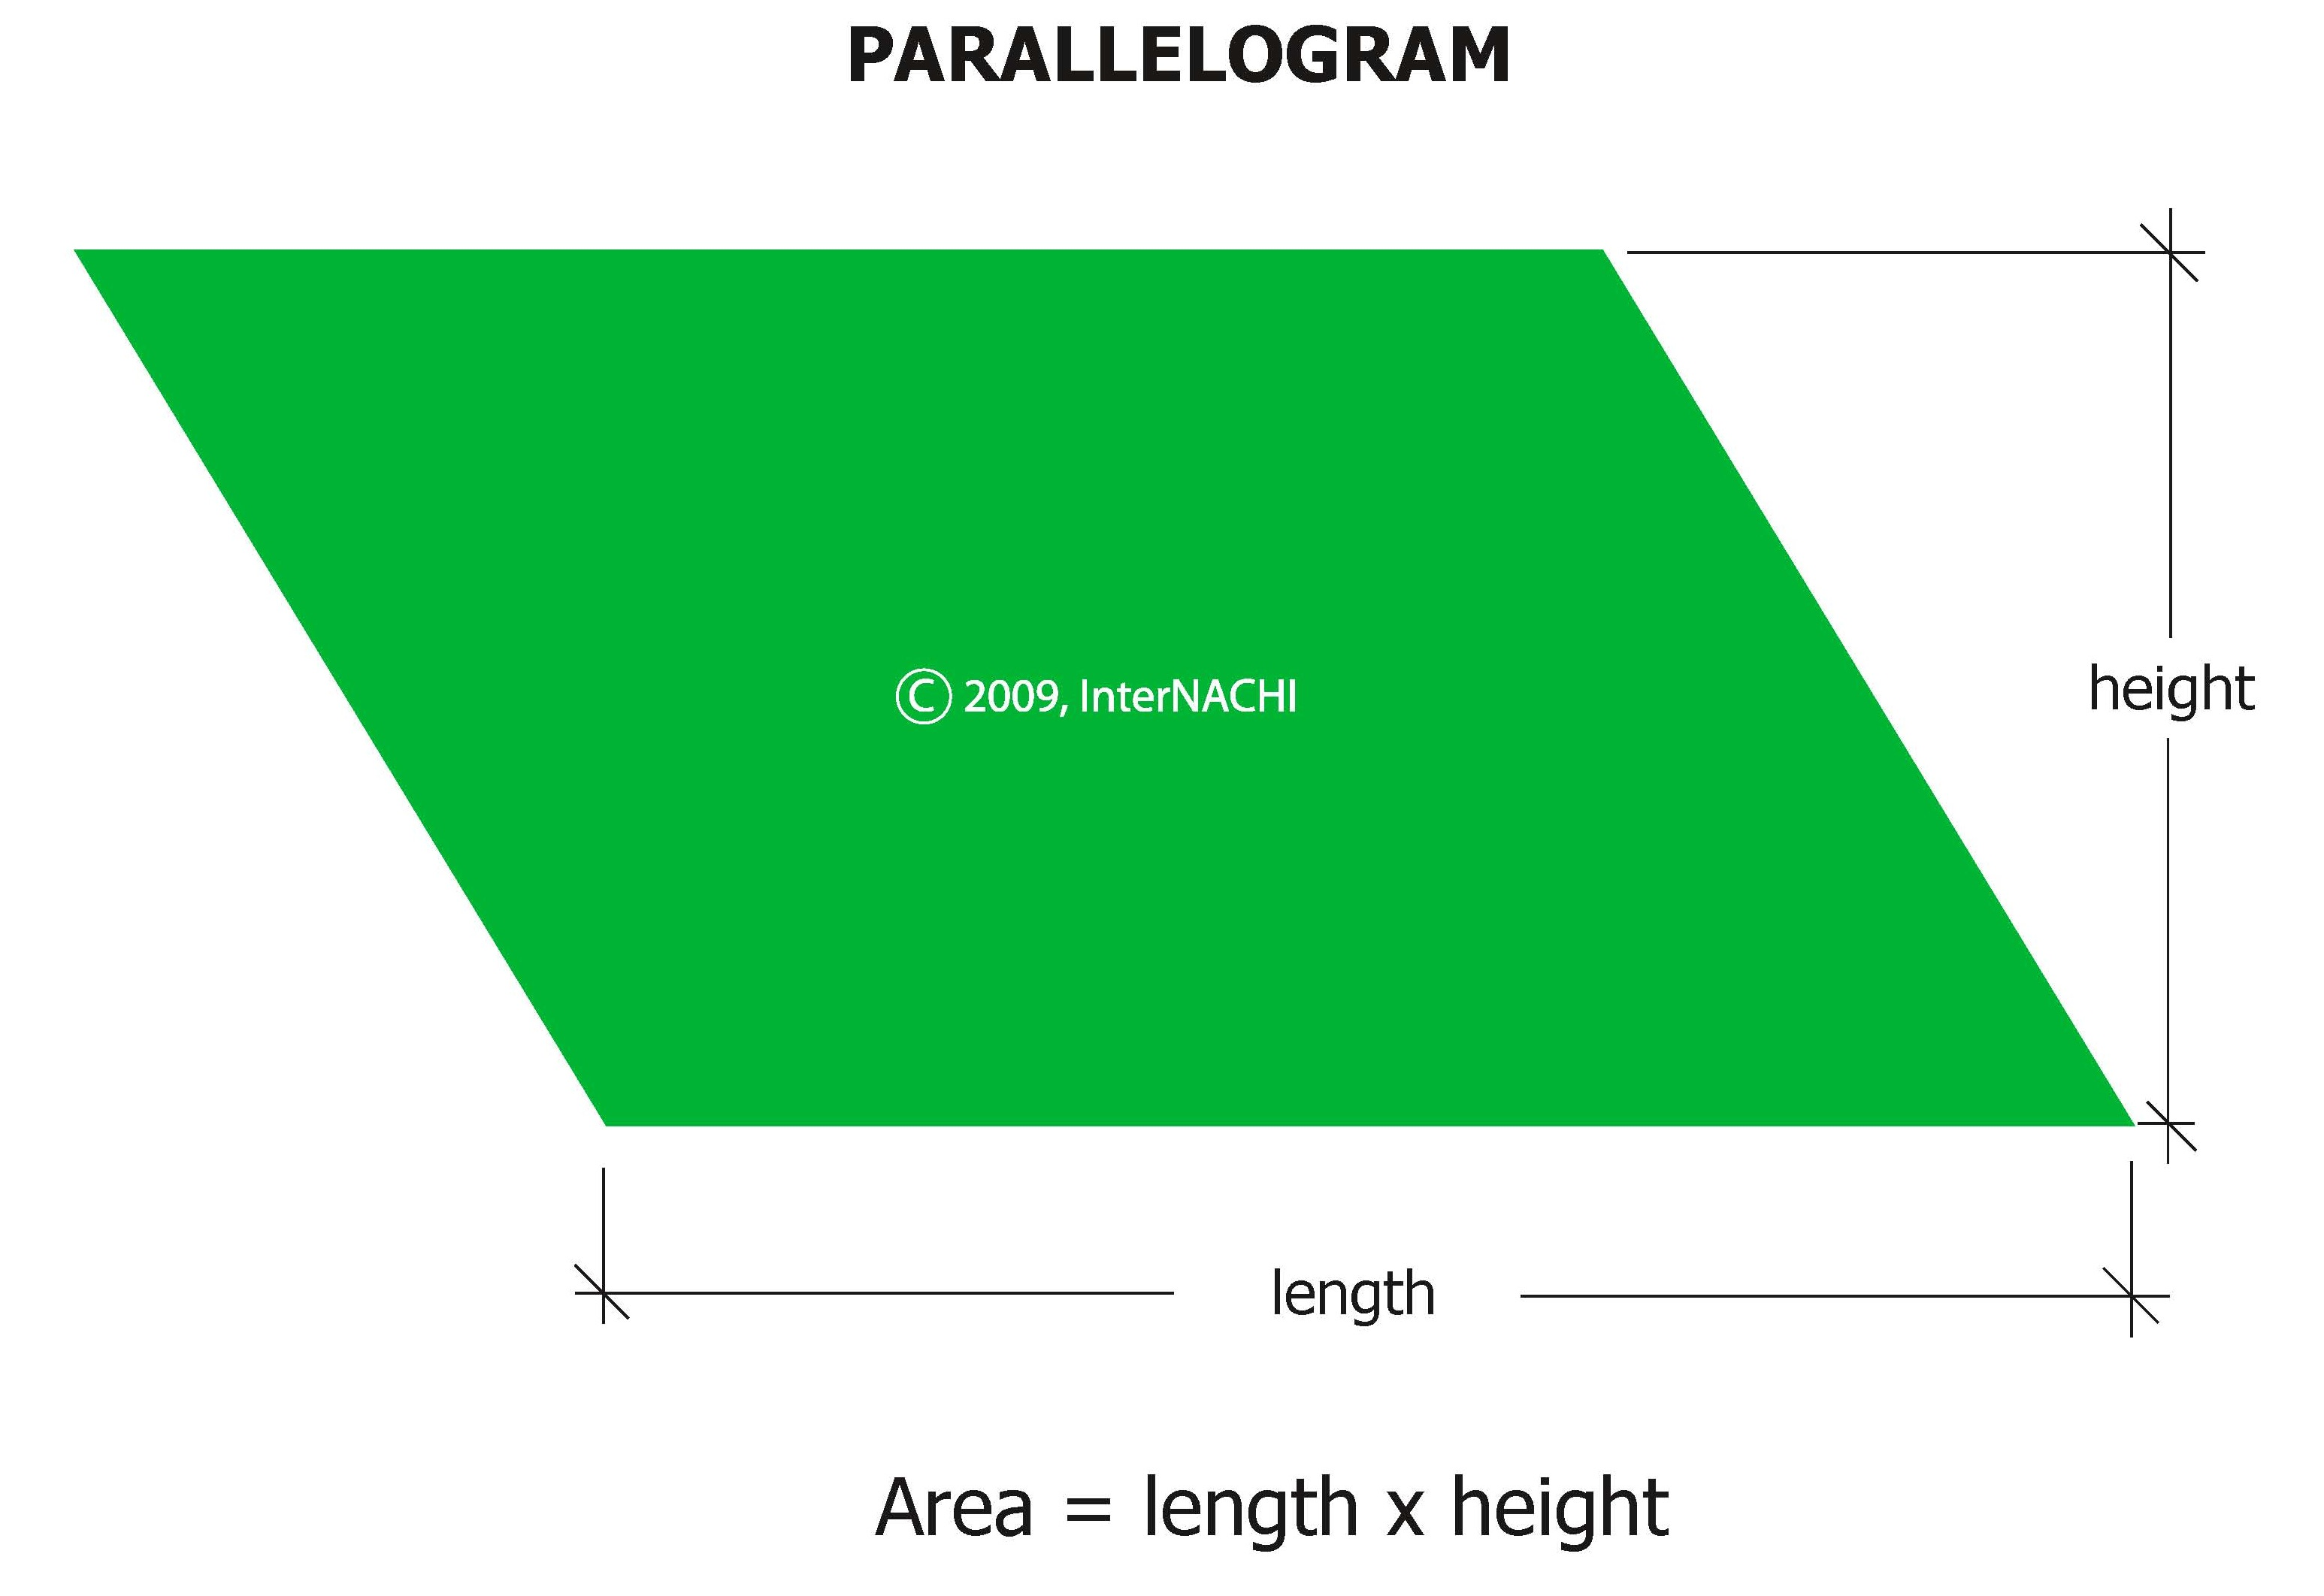 Area of a parallelogram roof.